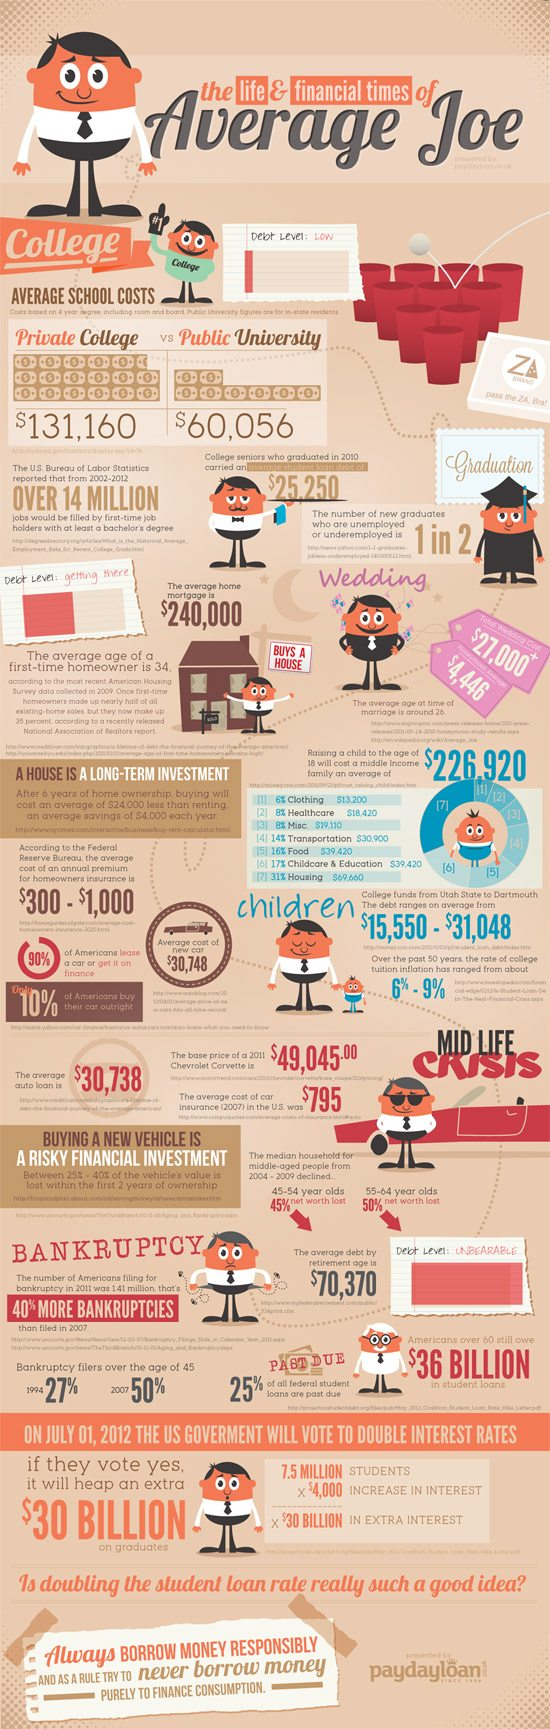 Infographic: The life and finanical times of average joe